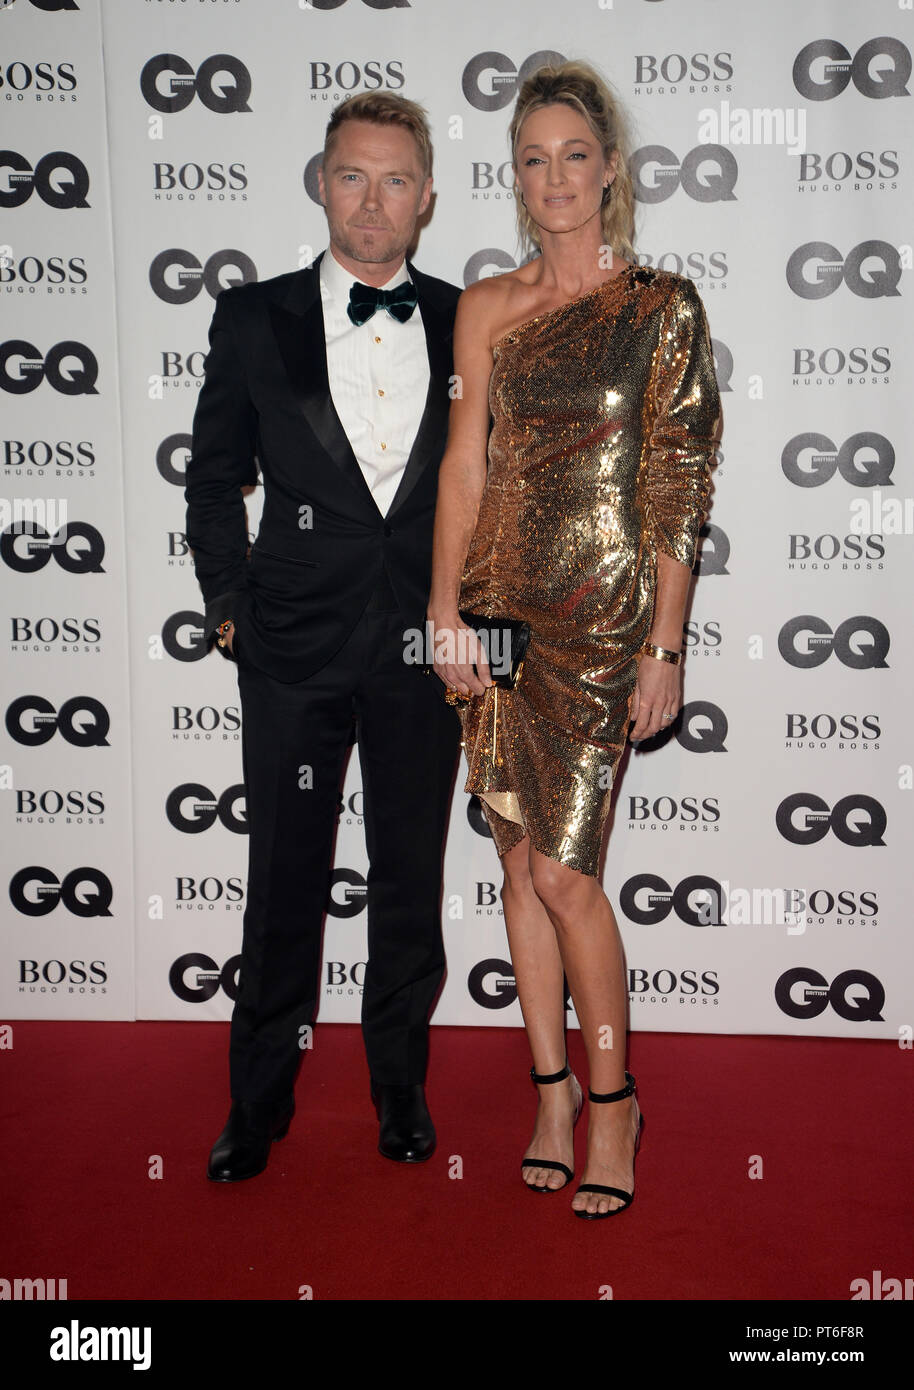 GQ Men Of The Year Awards  Featuring: Ronan Keating Where: London, United Kingdom When: 05 Sep 2018 Credit: Tony Oudot/WENN - Stock Image